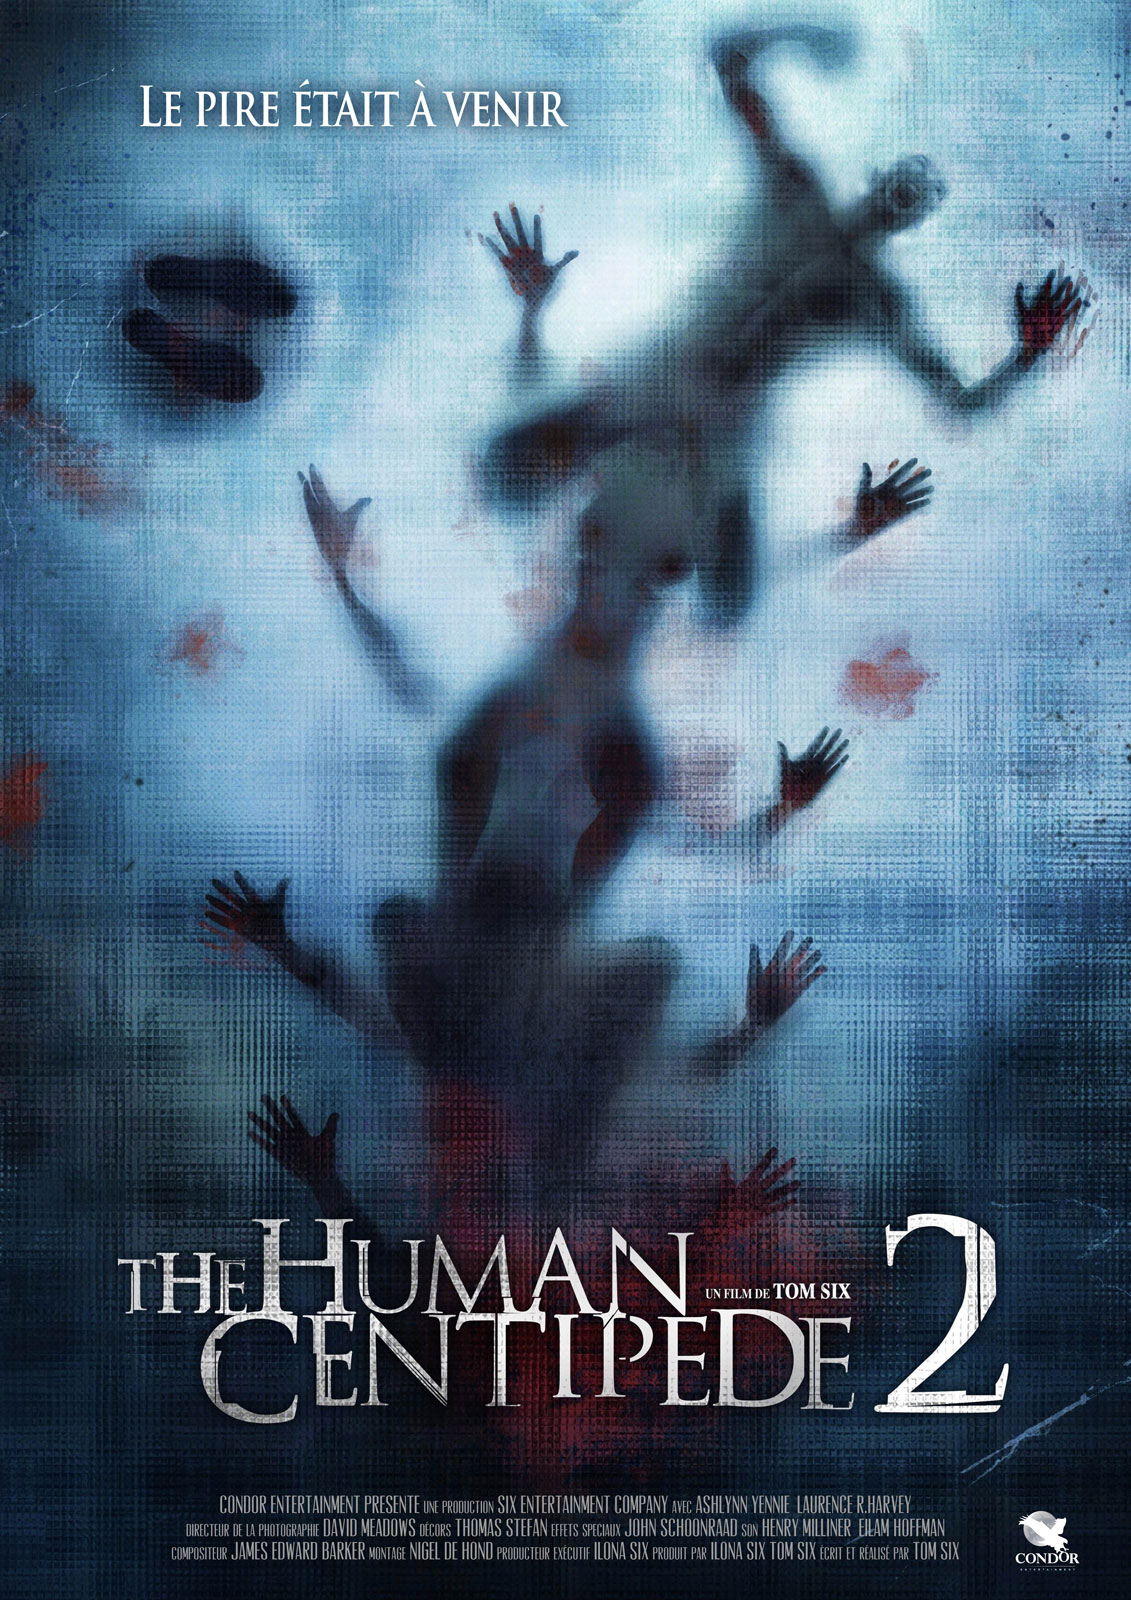 The Human Centipede 2 (Full Sequence) streaming